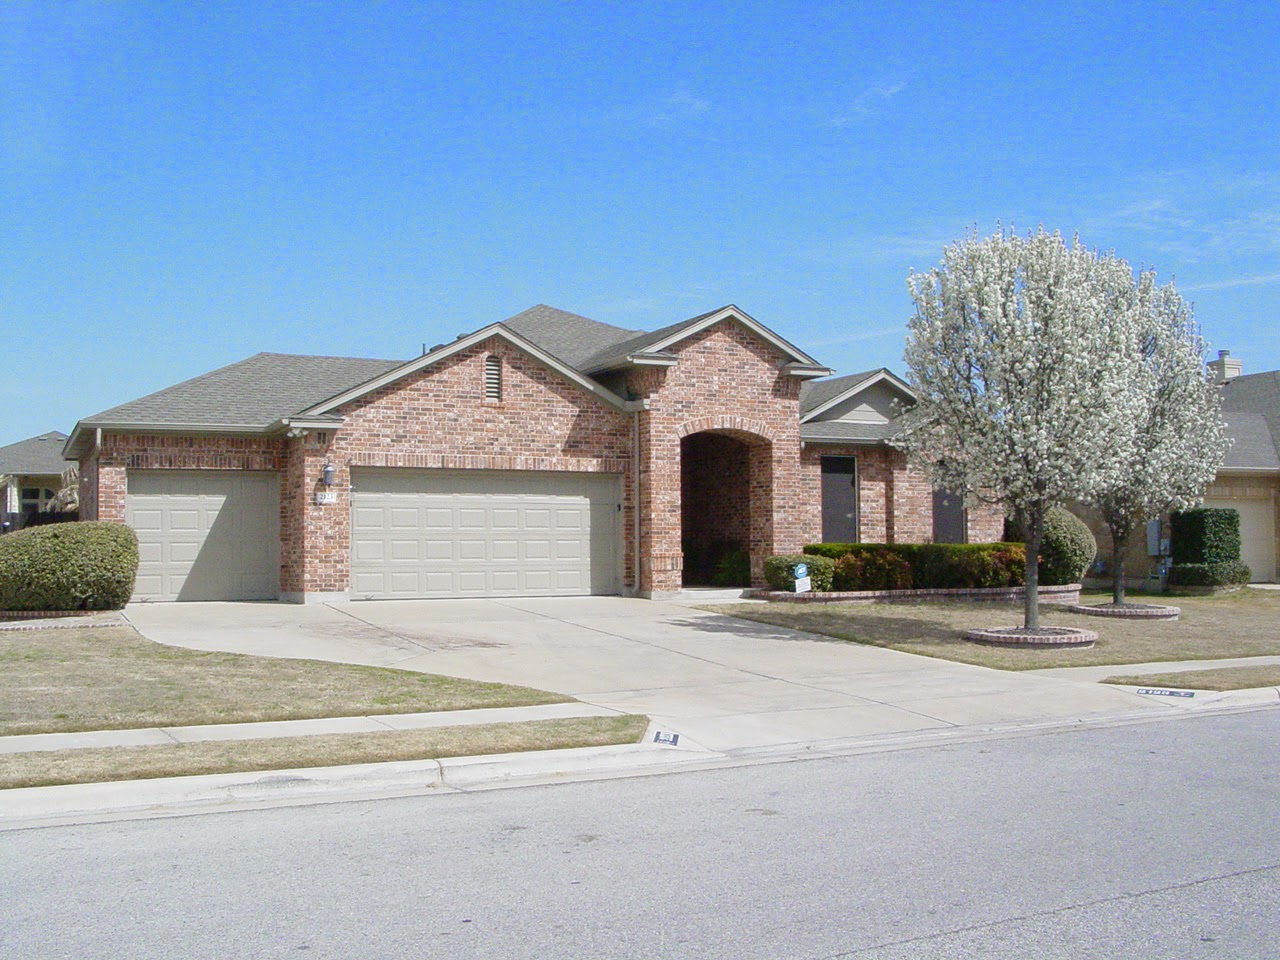 2123 settlers park loop round rock tx 78665 for sale by